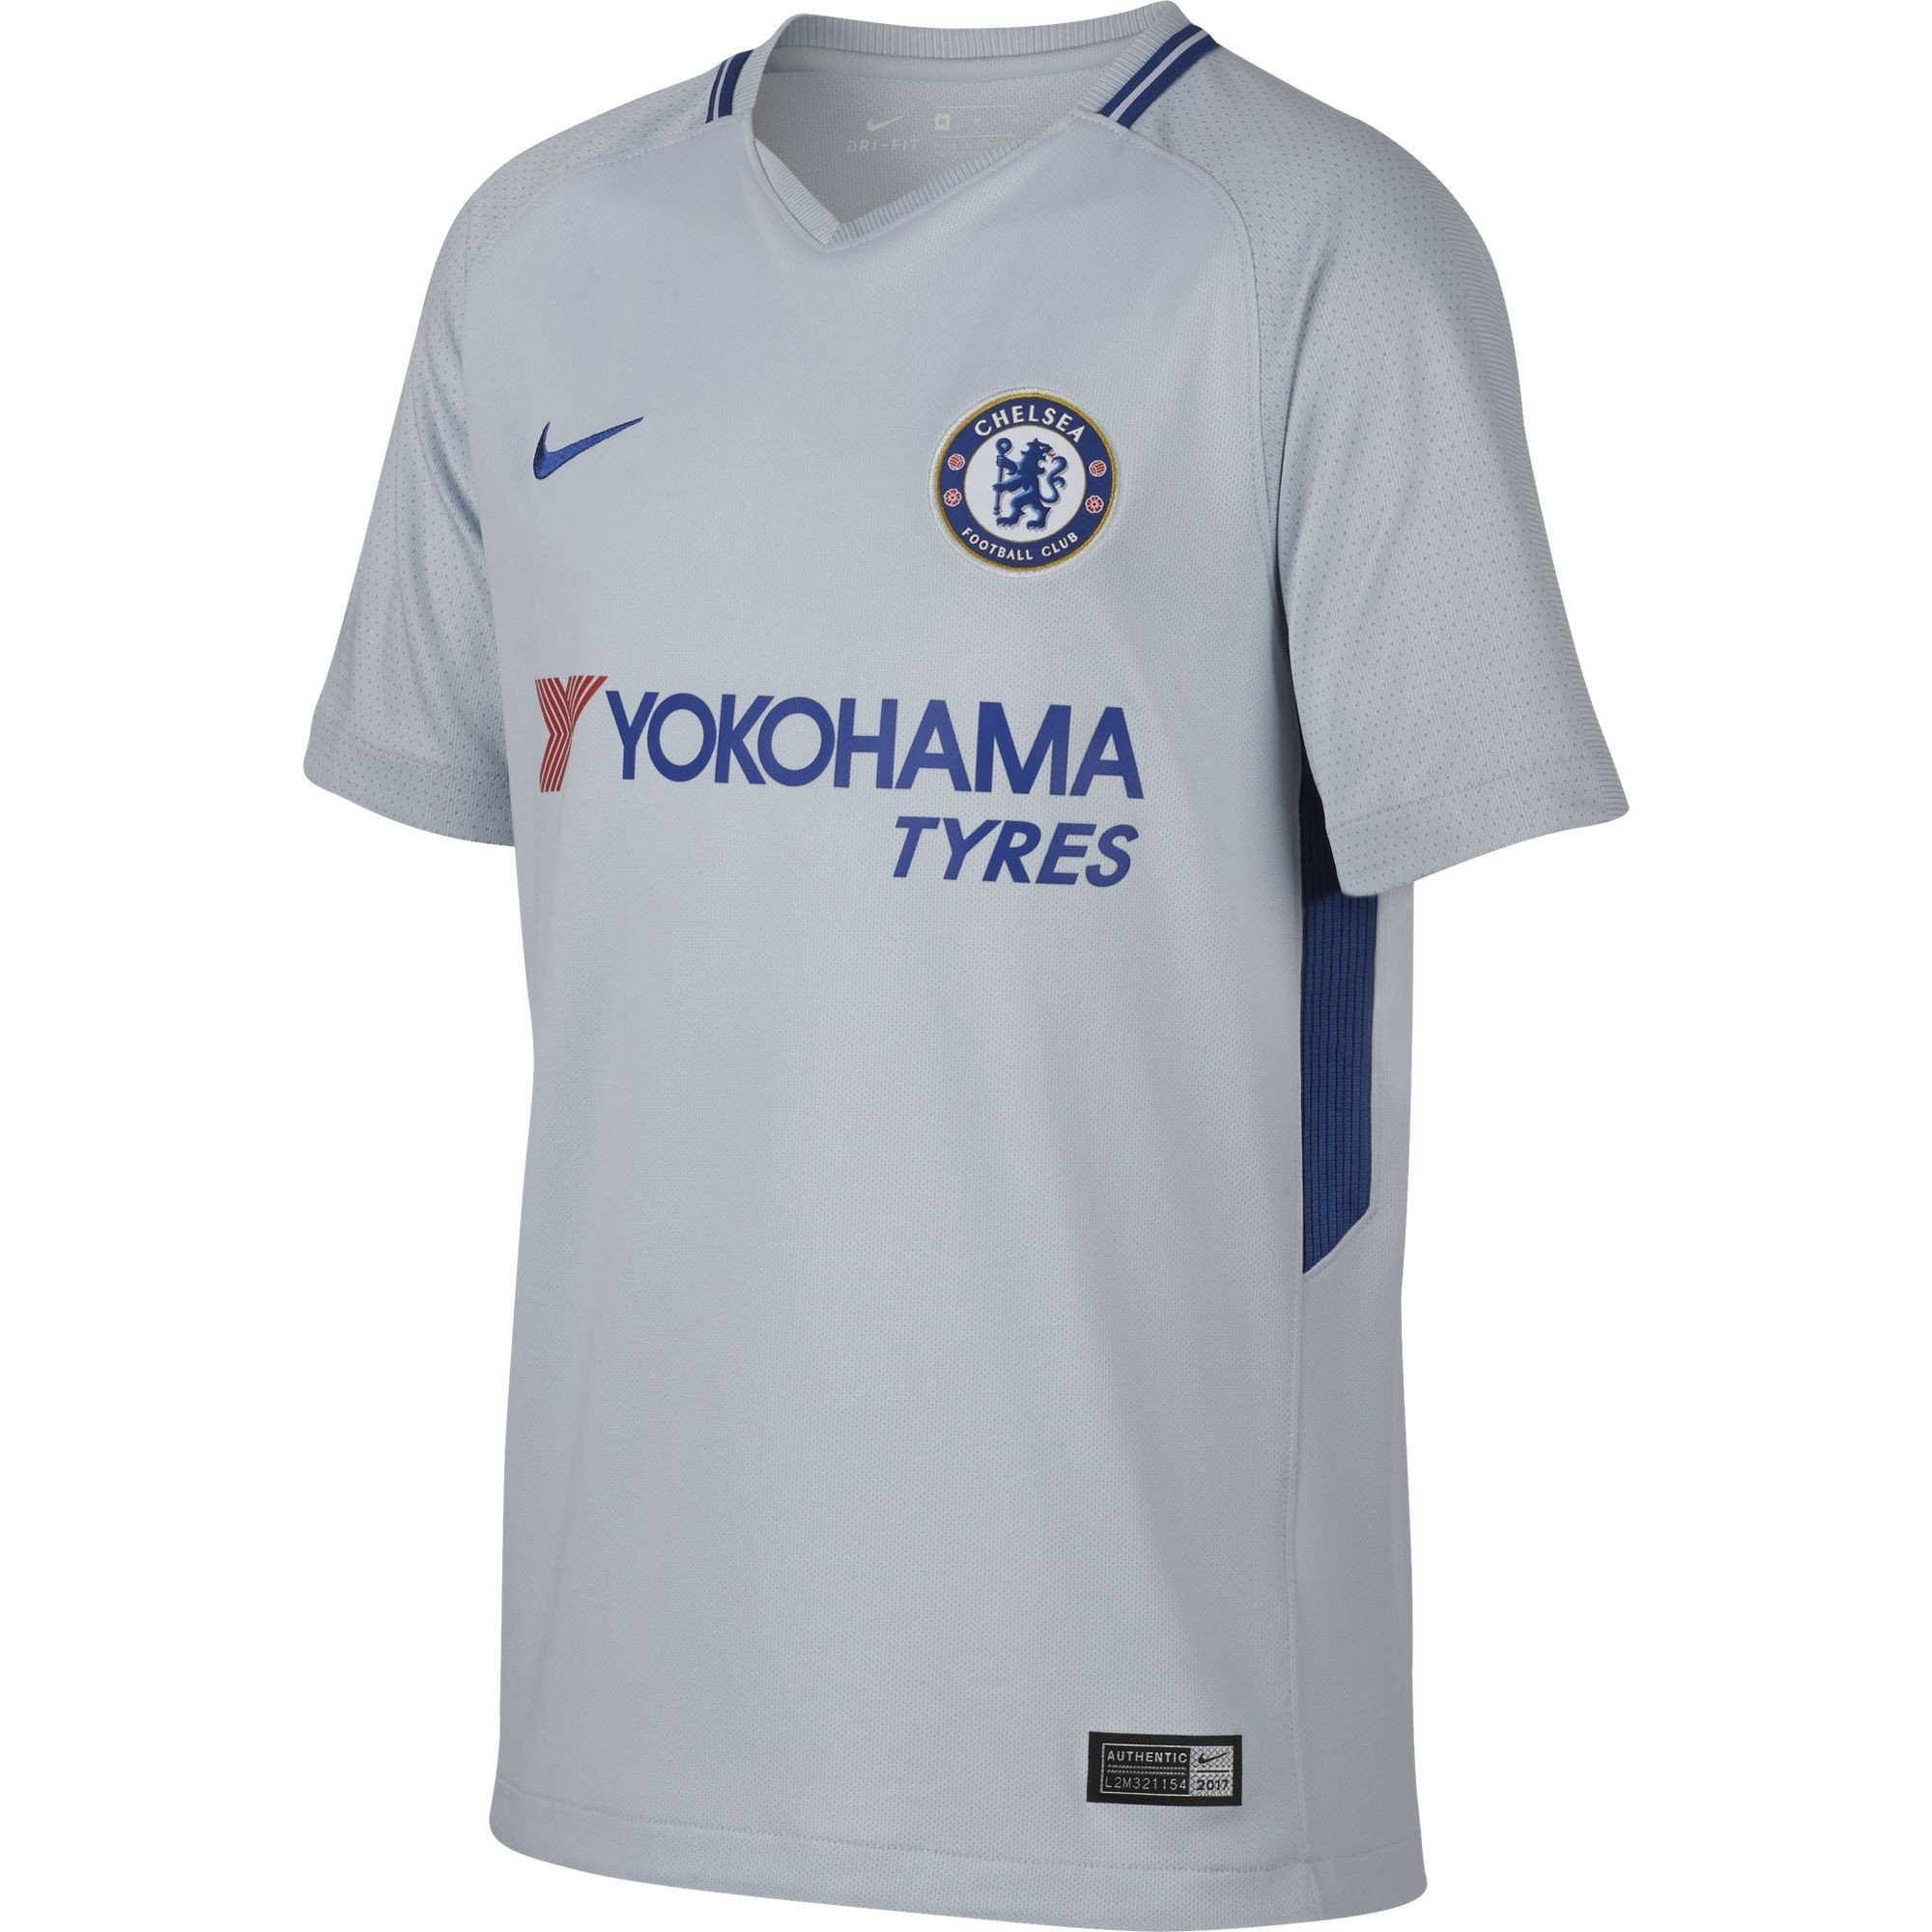 c6a41ab5190 Chelsea FC Jerseys : Best Football Jerseys for Sale - Winterfesthiver.ca